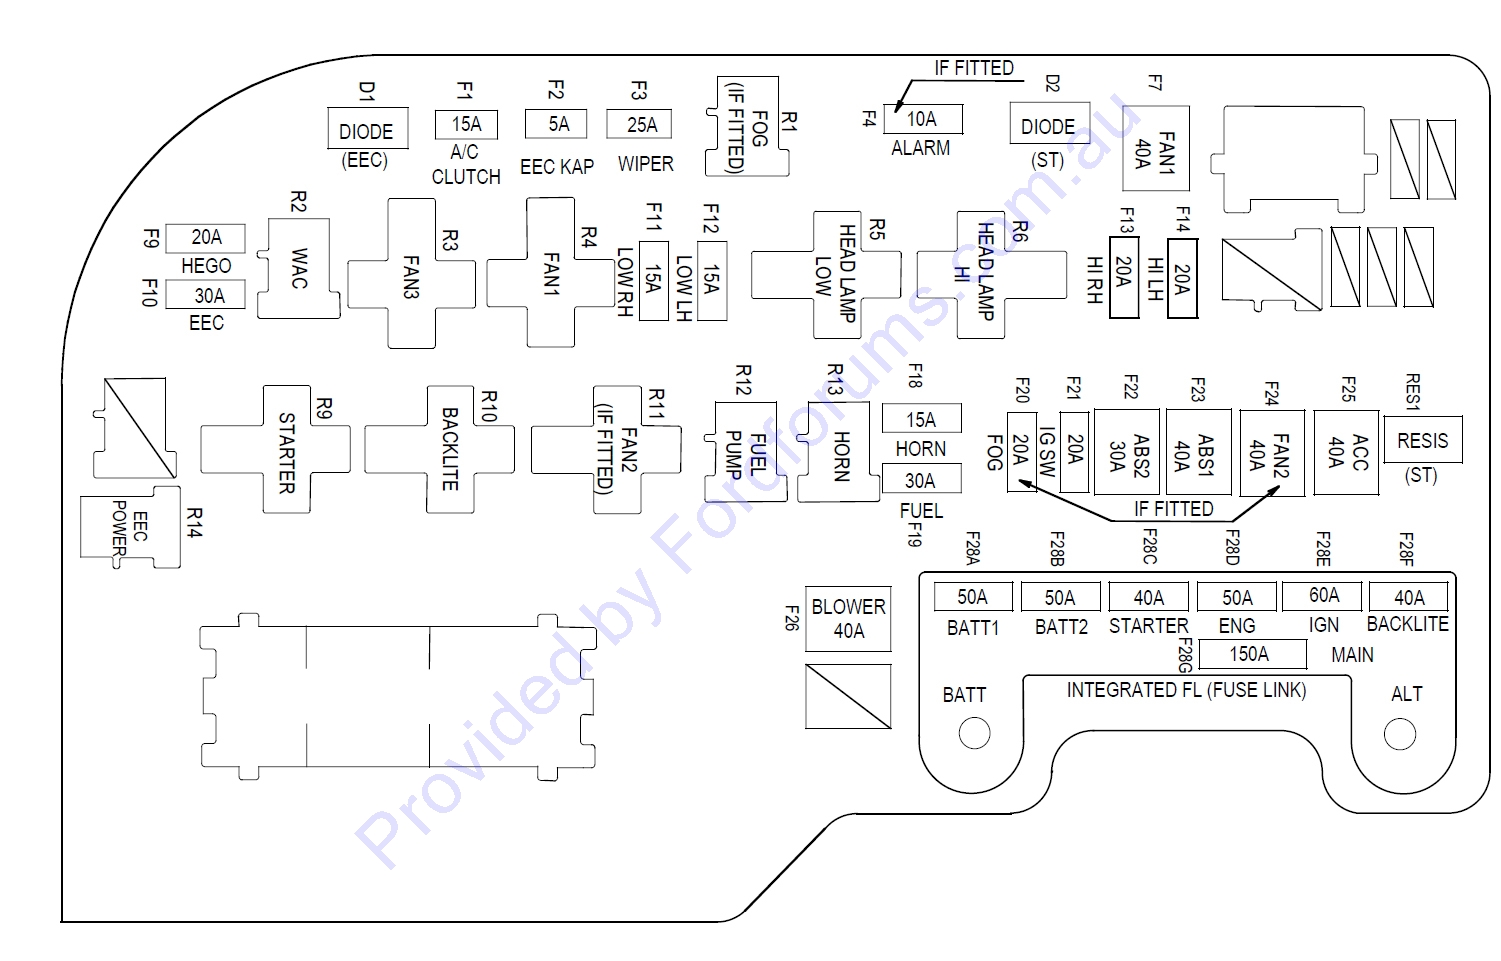 FG1Fuse_02.09f2c01e90f2baf8e2800a6f50b92709 air conditioning intermittent problem electrics workshop ford ford falcon au fuse box diagram at readyjetset.co